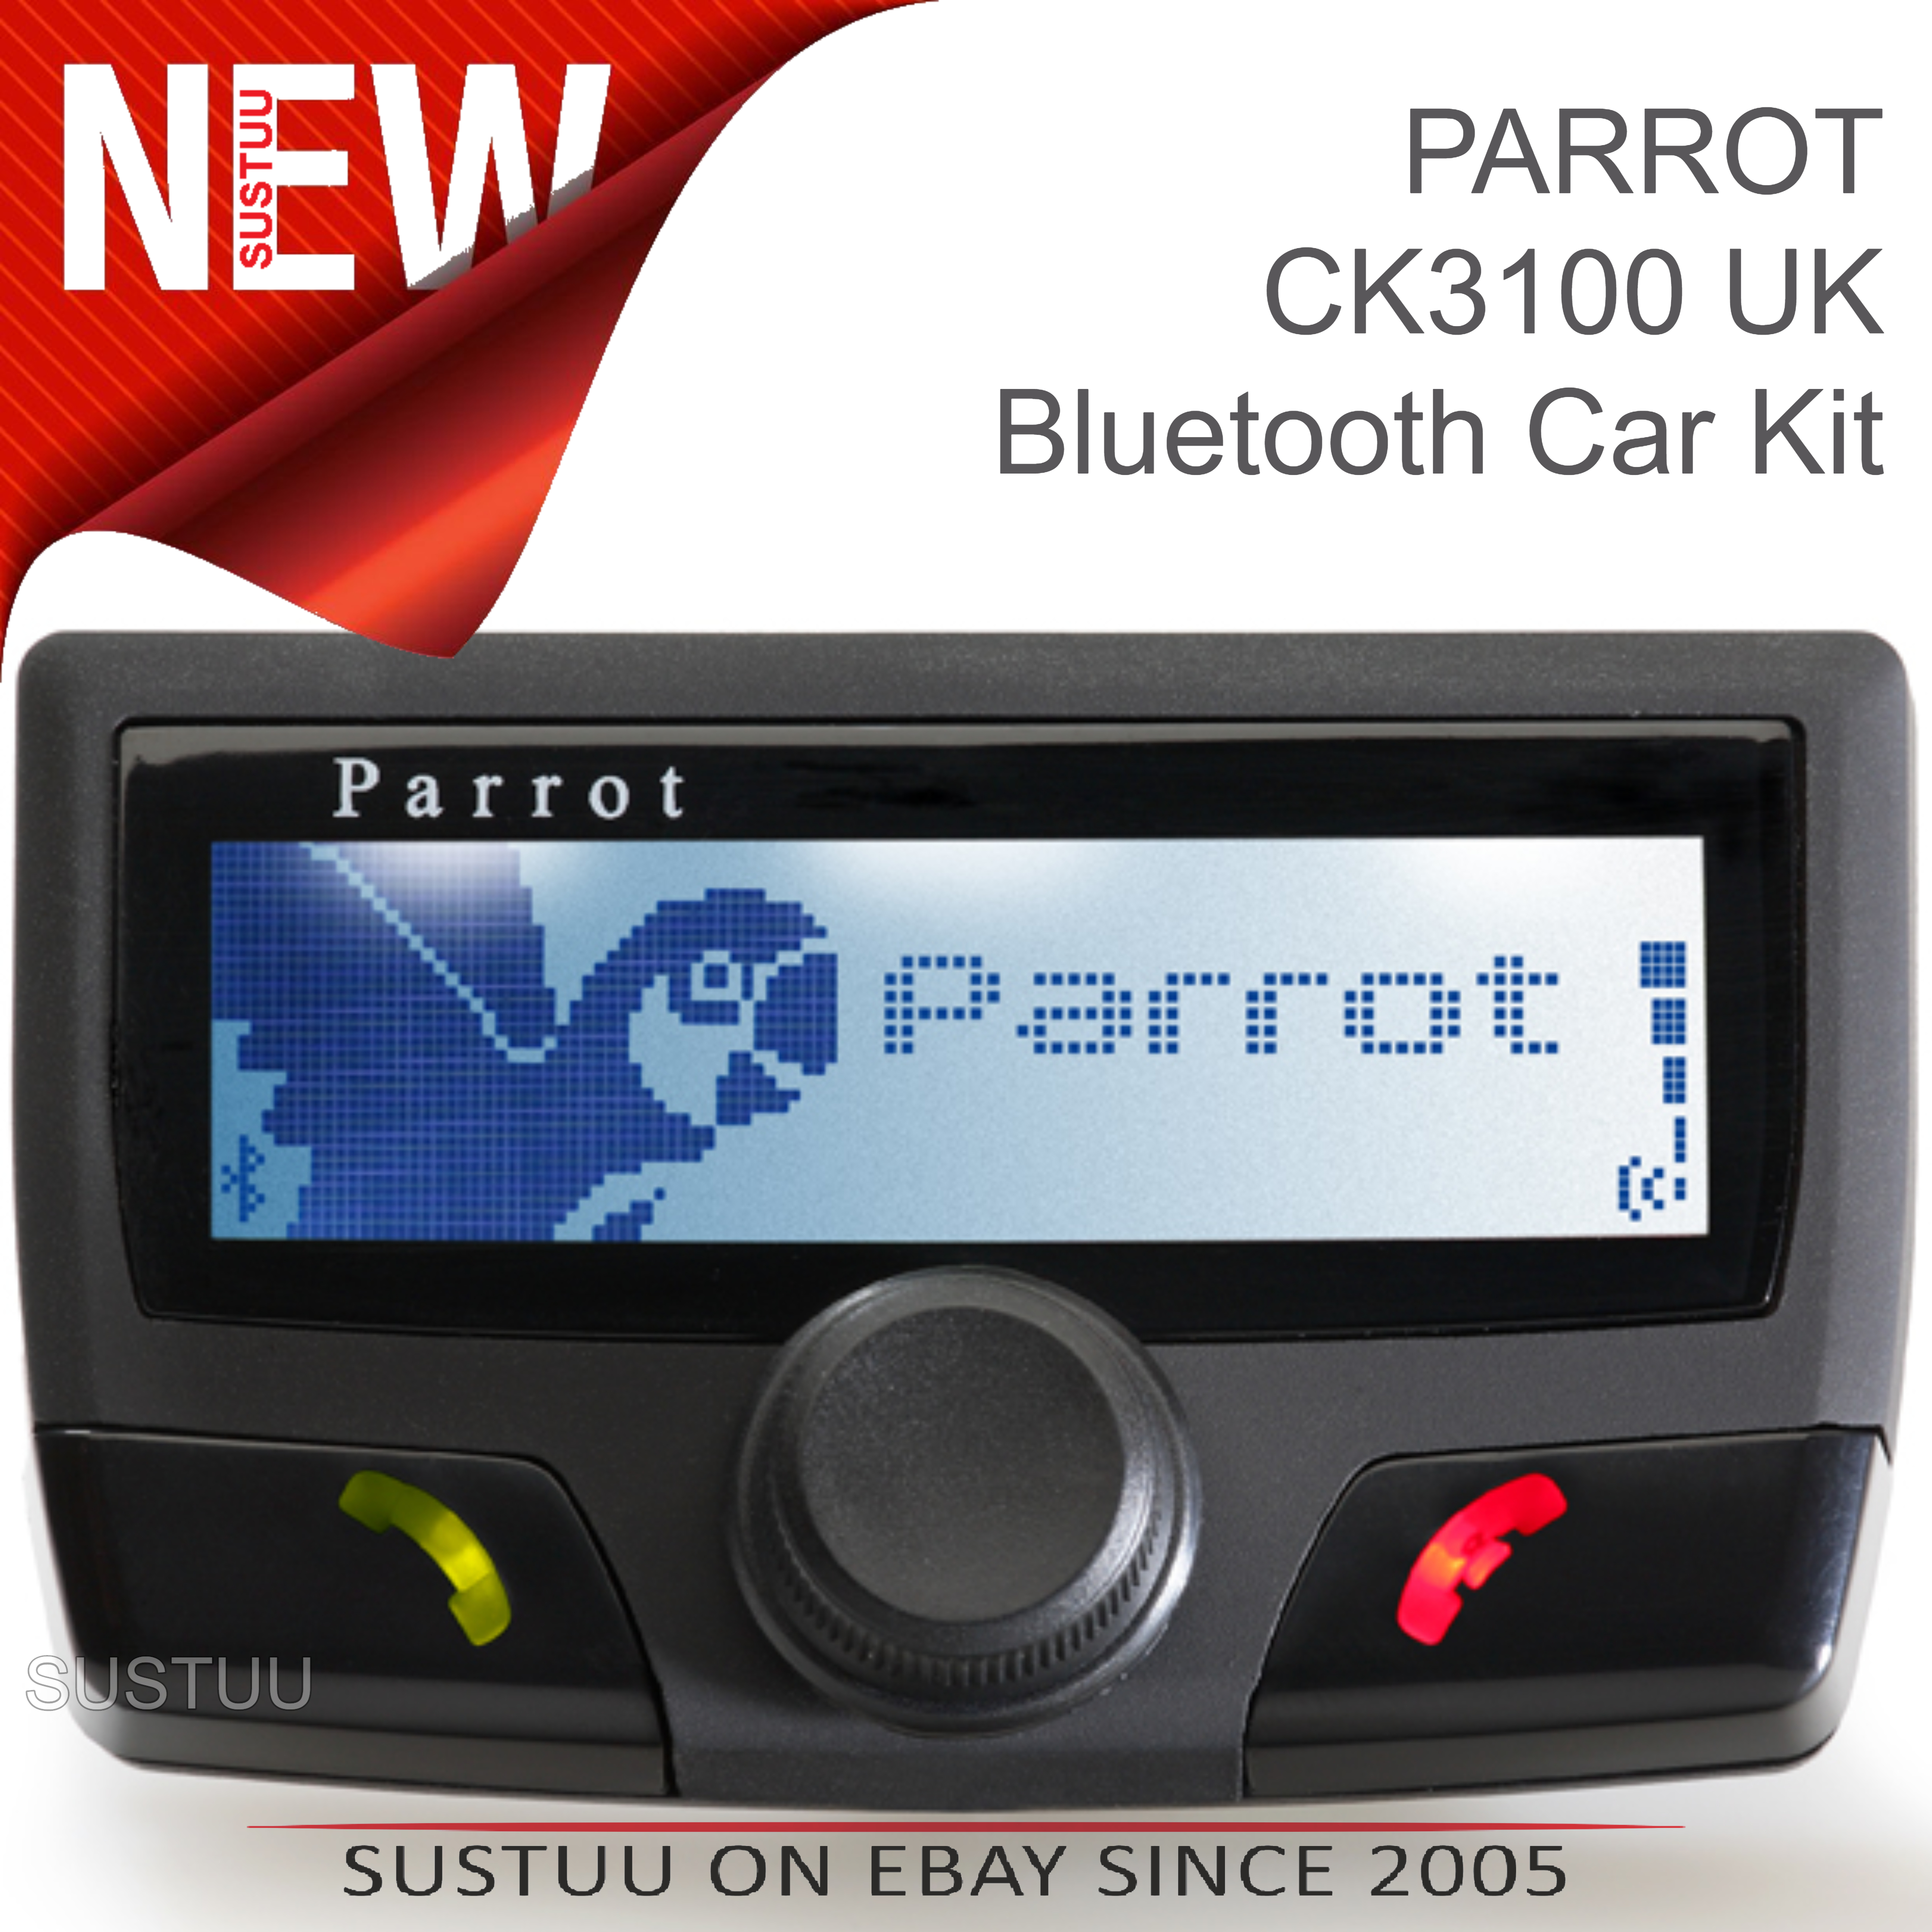 parrot k3100 uk free talk bluetooth car kit for mobile. Black Bedroom Furniture Sets. Home Design Ideas